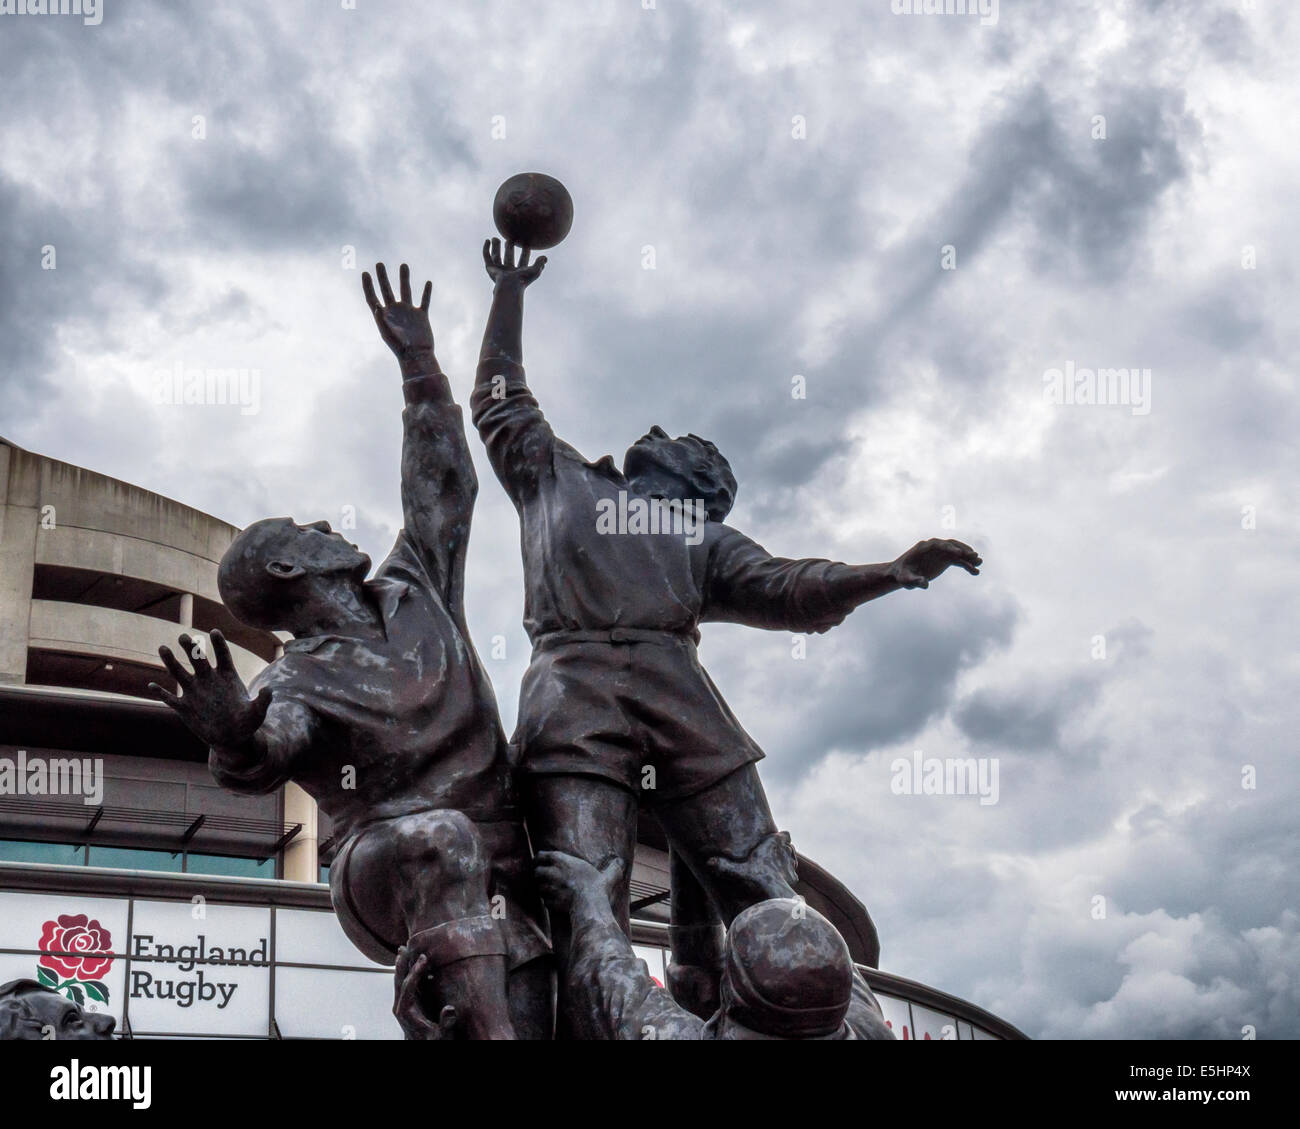 Twickenham Rugby Union stadium and bronze sculpture of Rugby players leaping for a rugby ball, London, England, - Stock Image